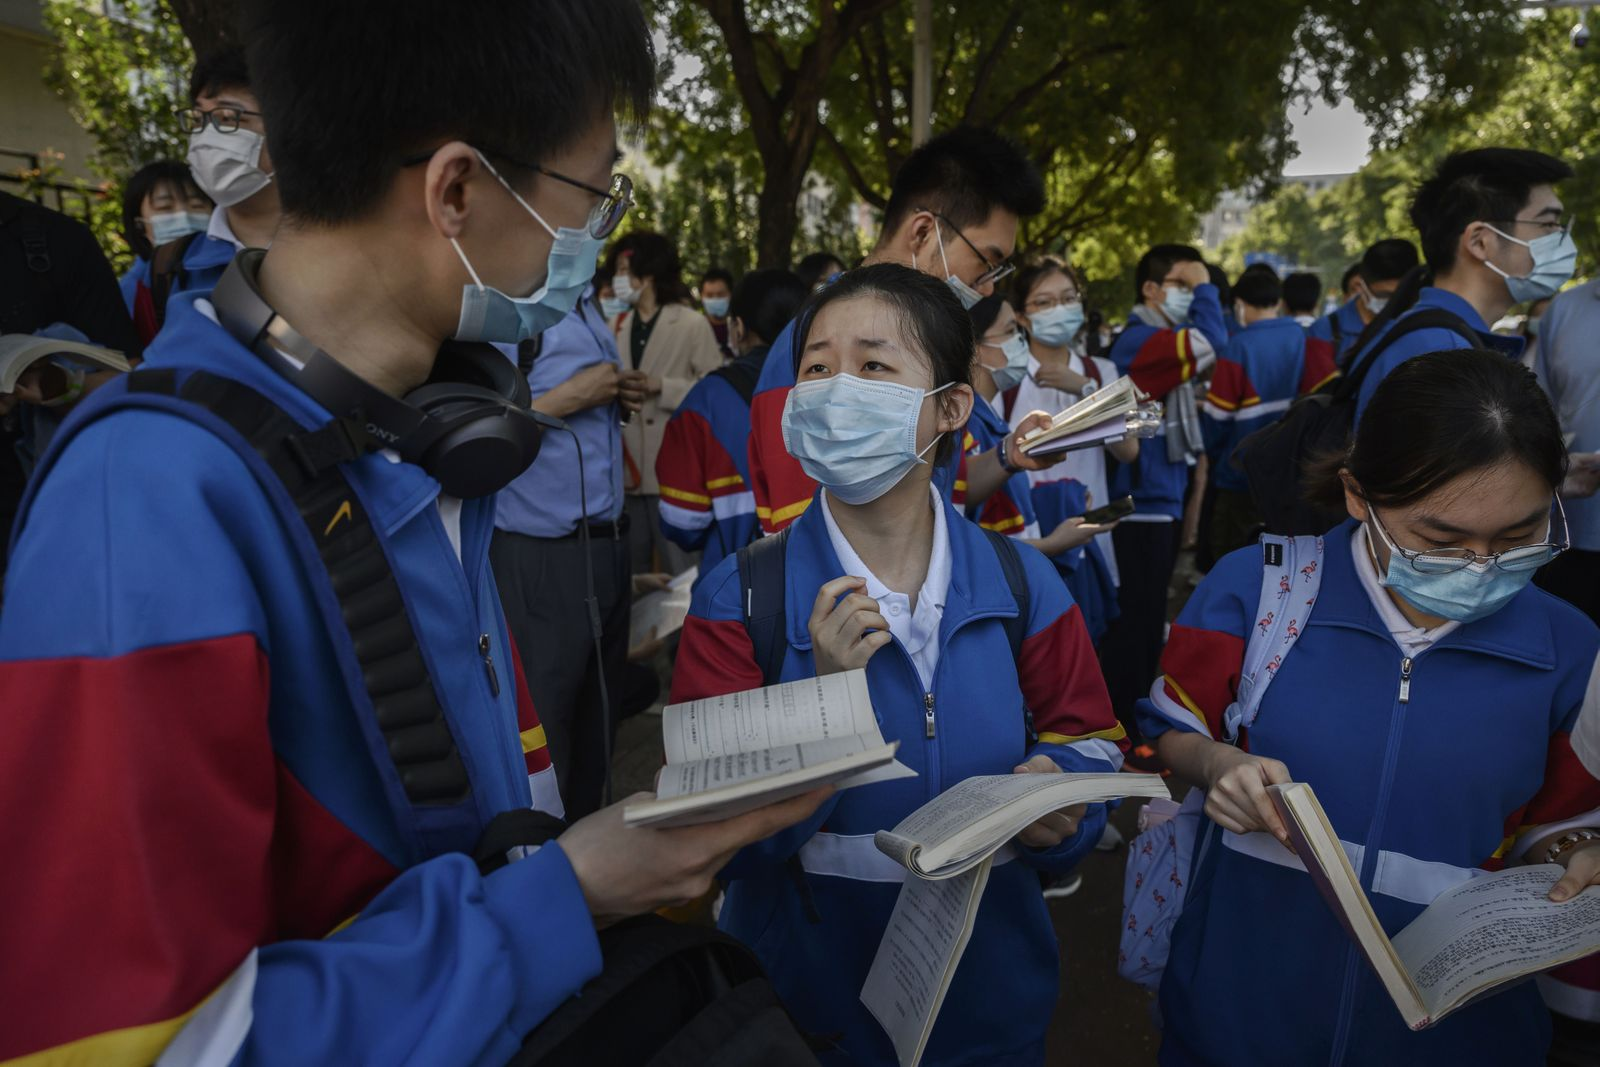 China Students Take College Entrance Exams Amid COVID-19 Pandemic